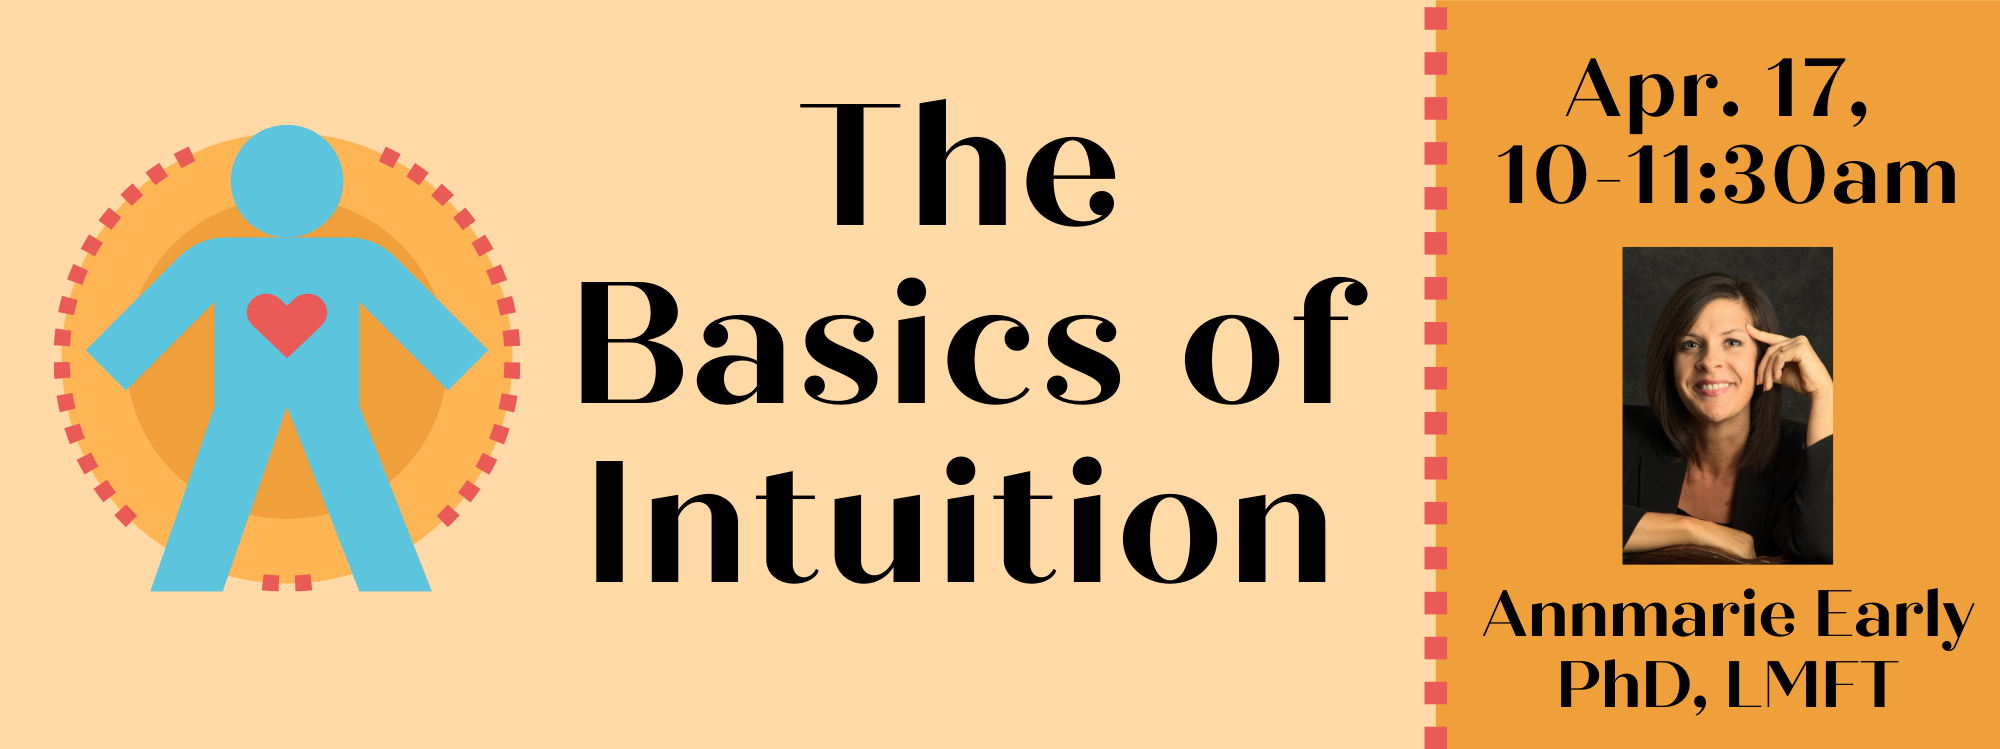 The Basics of Intuition